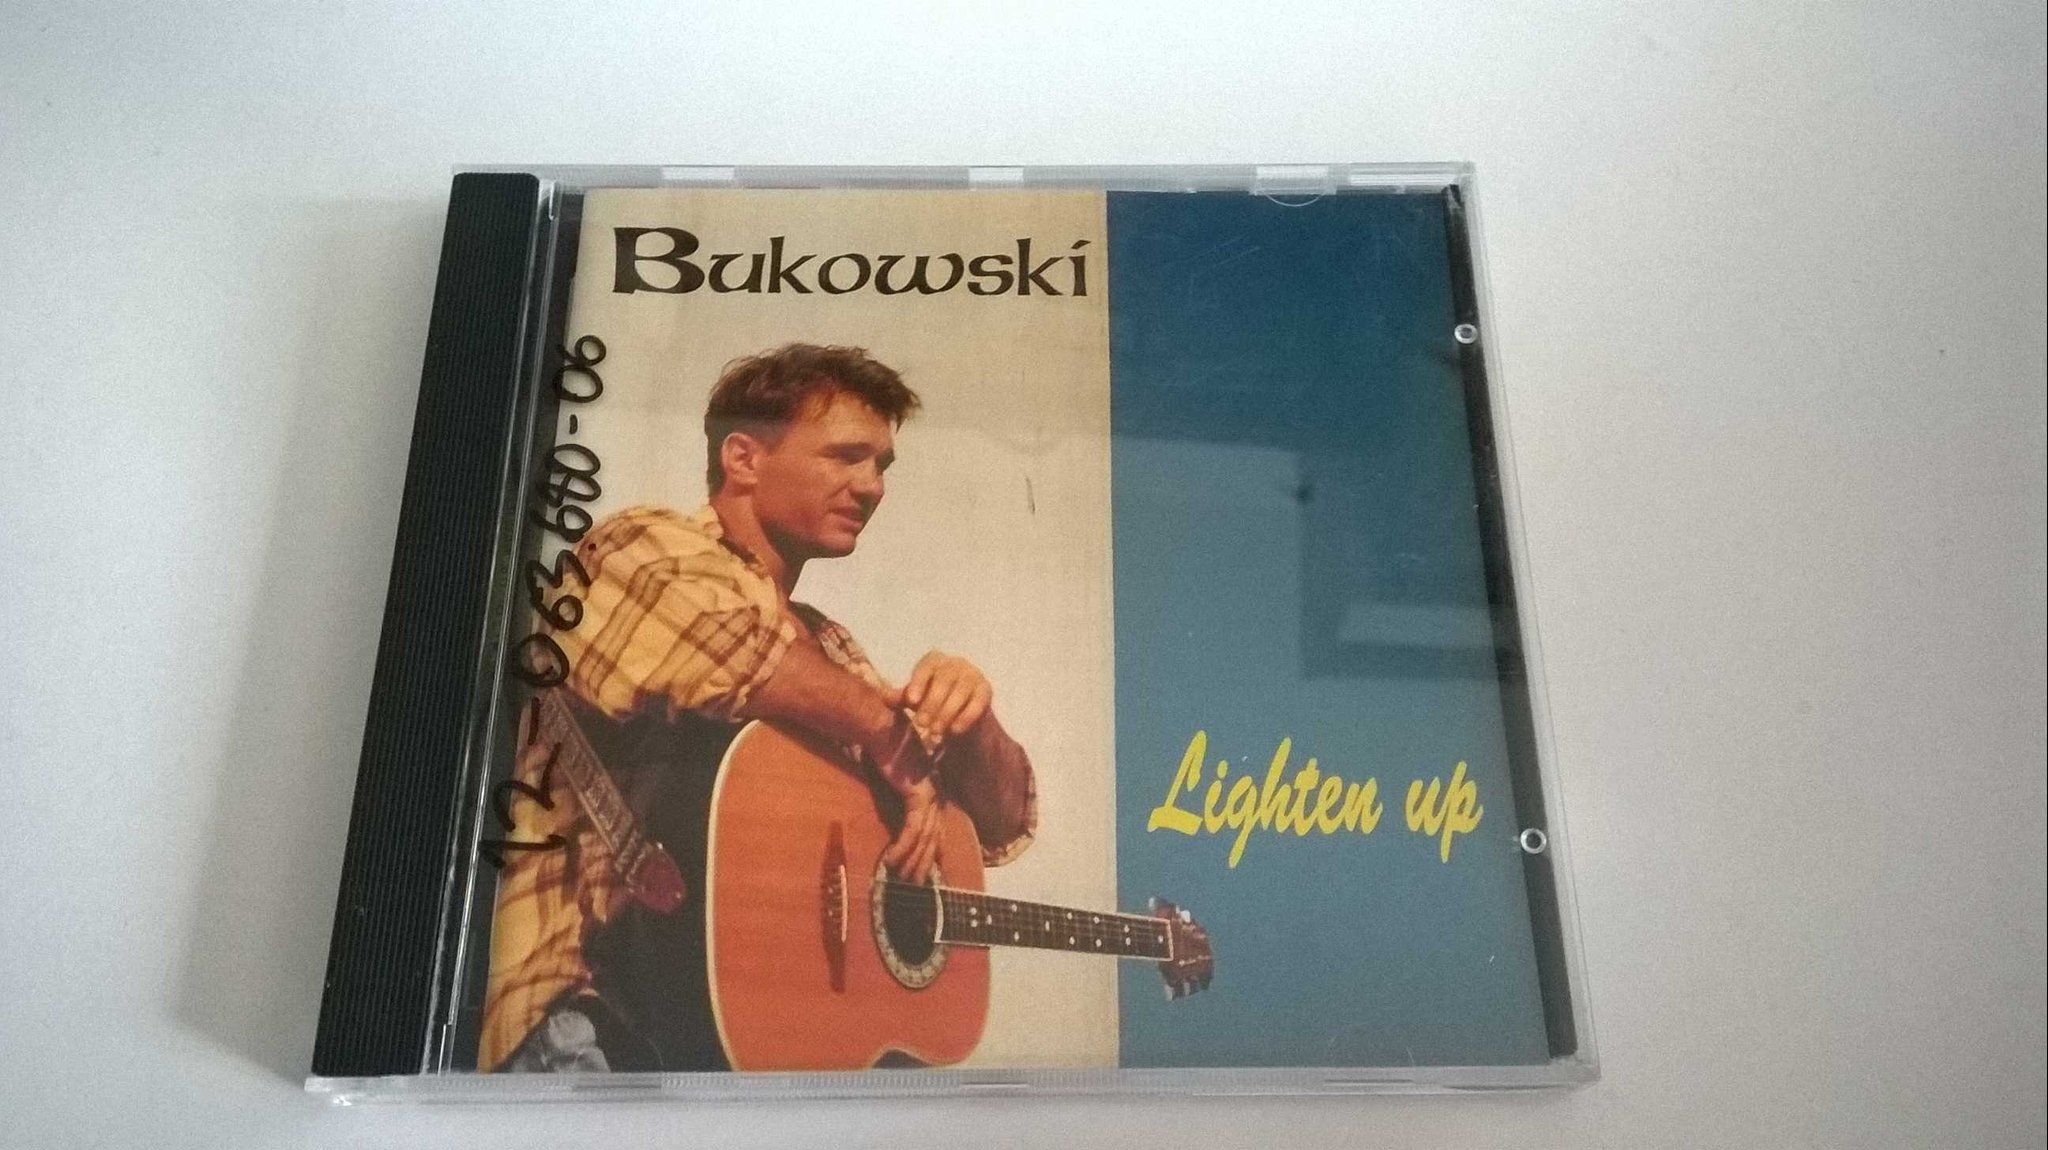 Bukowski - Lighten up, CD